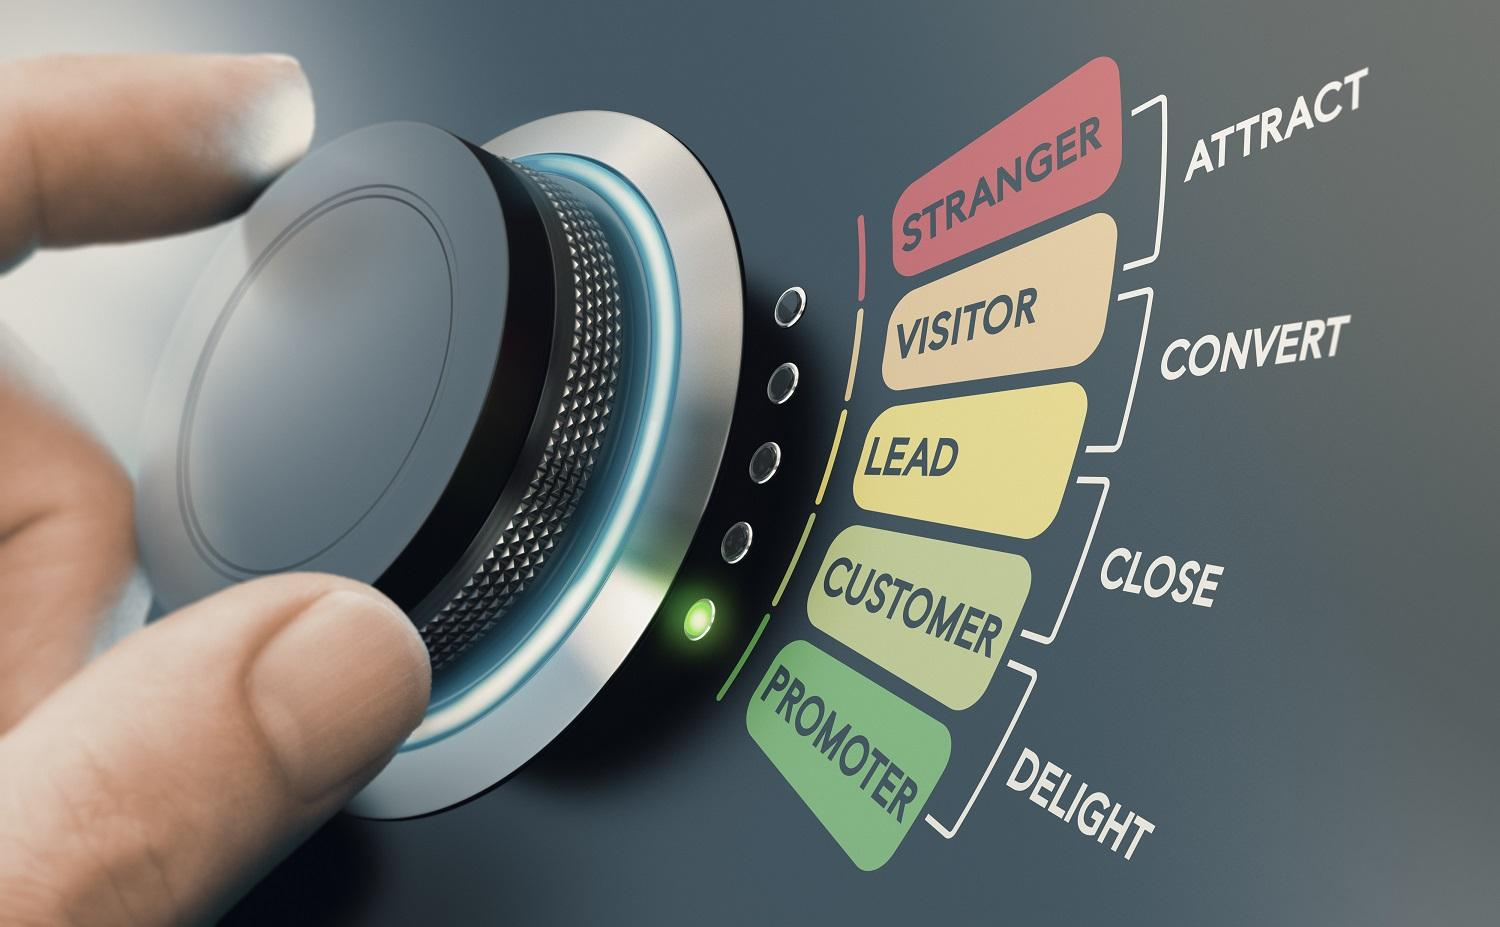 Fingers turn a knob to take strangers through the four stages of inbound marketing to make them into promoters.